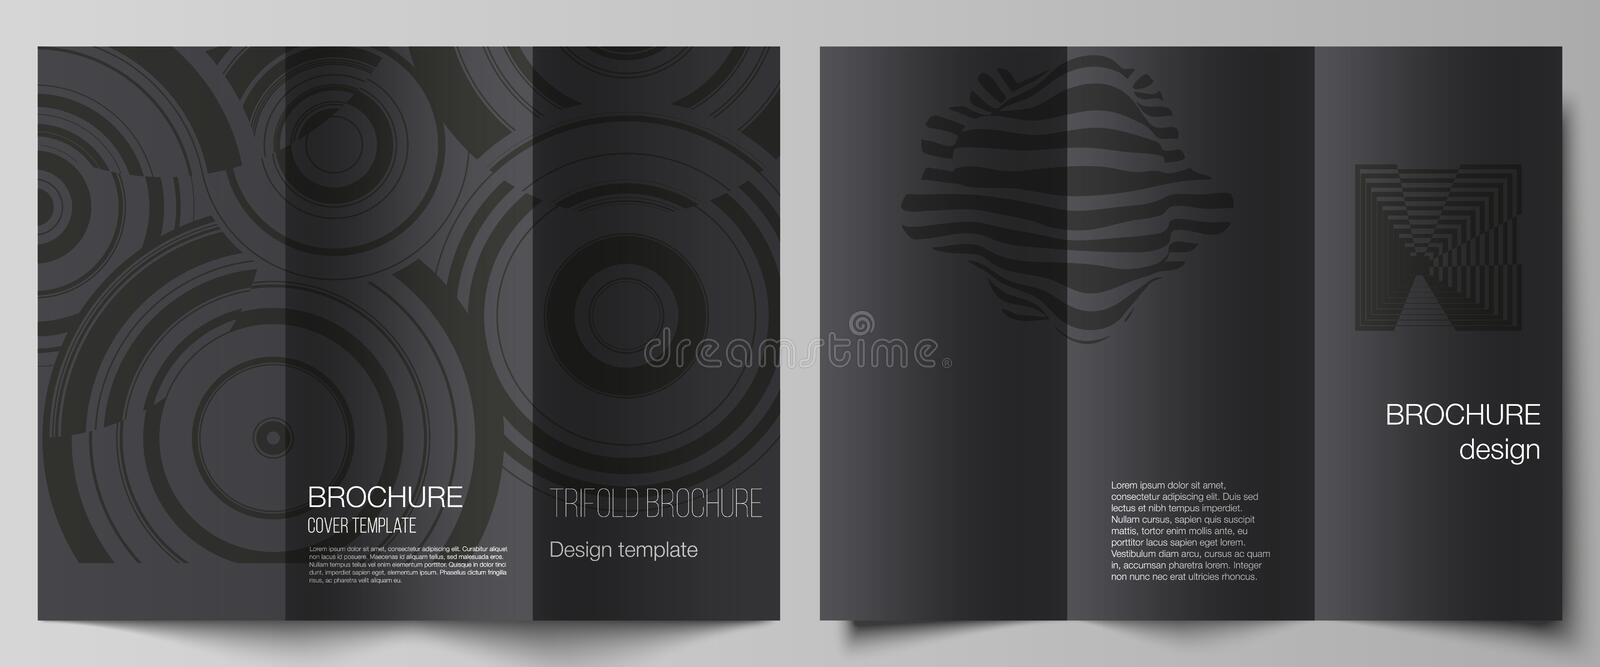 The minimal vector illustration layouts. Modern creative covers design templates for trifold brochure or flyer. Trendy. Geometric abstract background in royalty free illustration